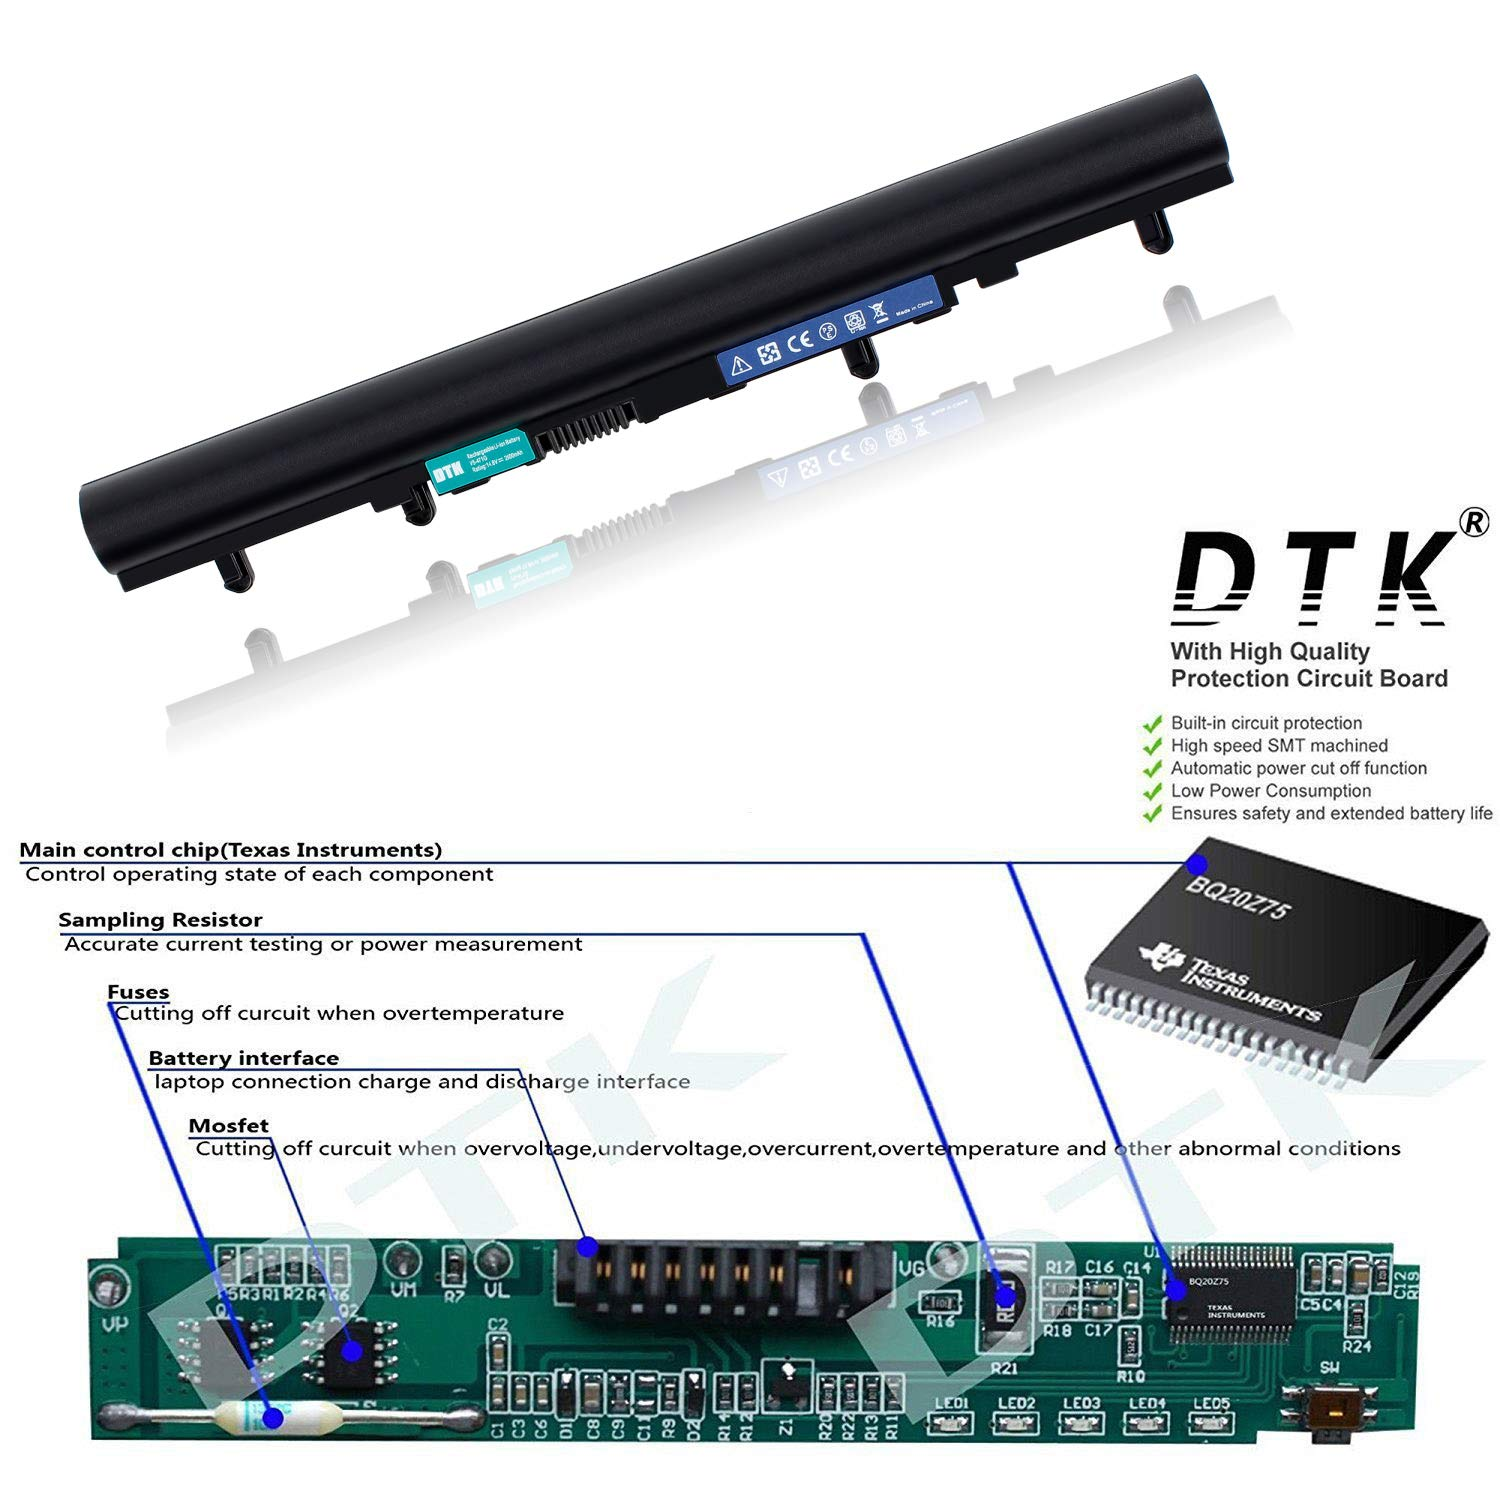 Dtk Laptop Battery Replacement For Acer Aspire V5 471 Batterycharging Discharging Circuit Used In Applications 431 531 571 431g P 471g 531g 571g Al12a32 4icr17 65 148v